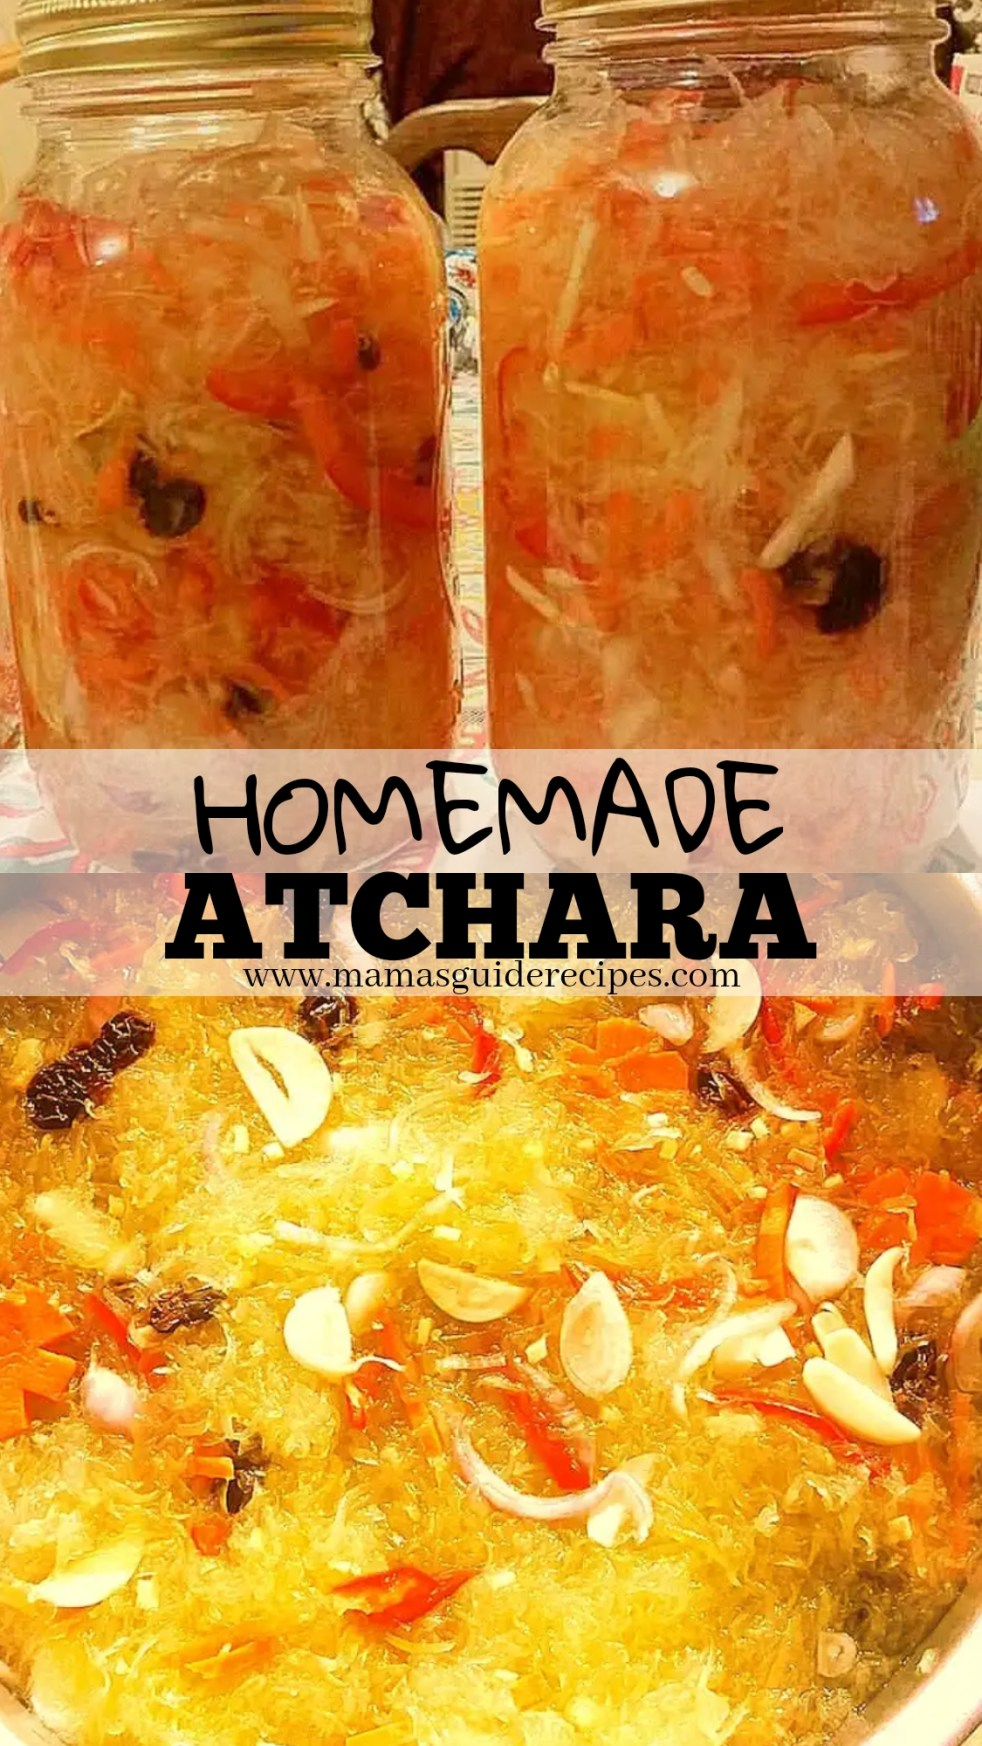 HOMEMADE ATCHARA